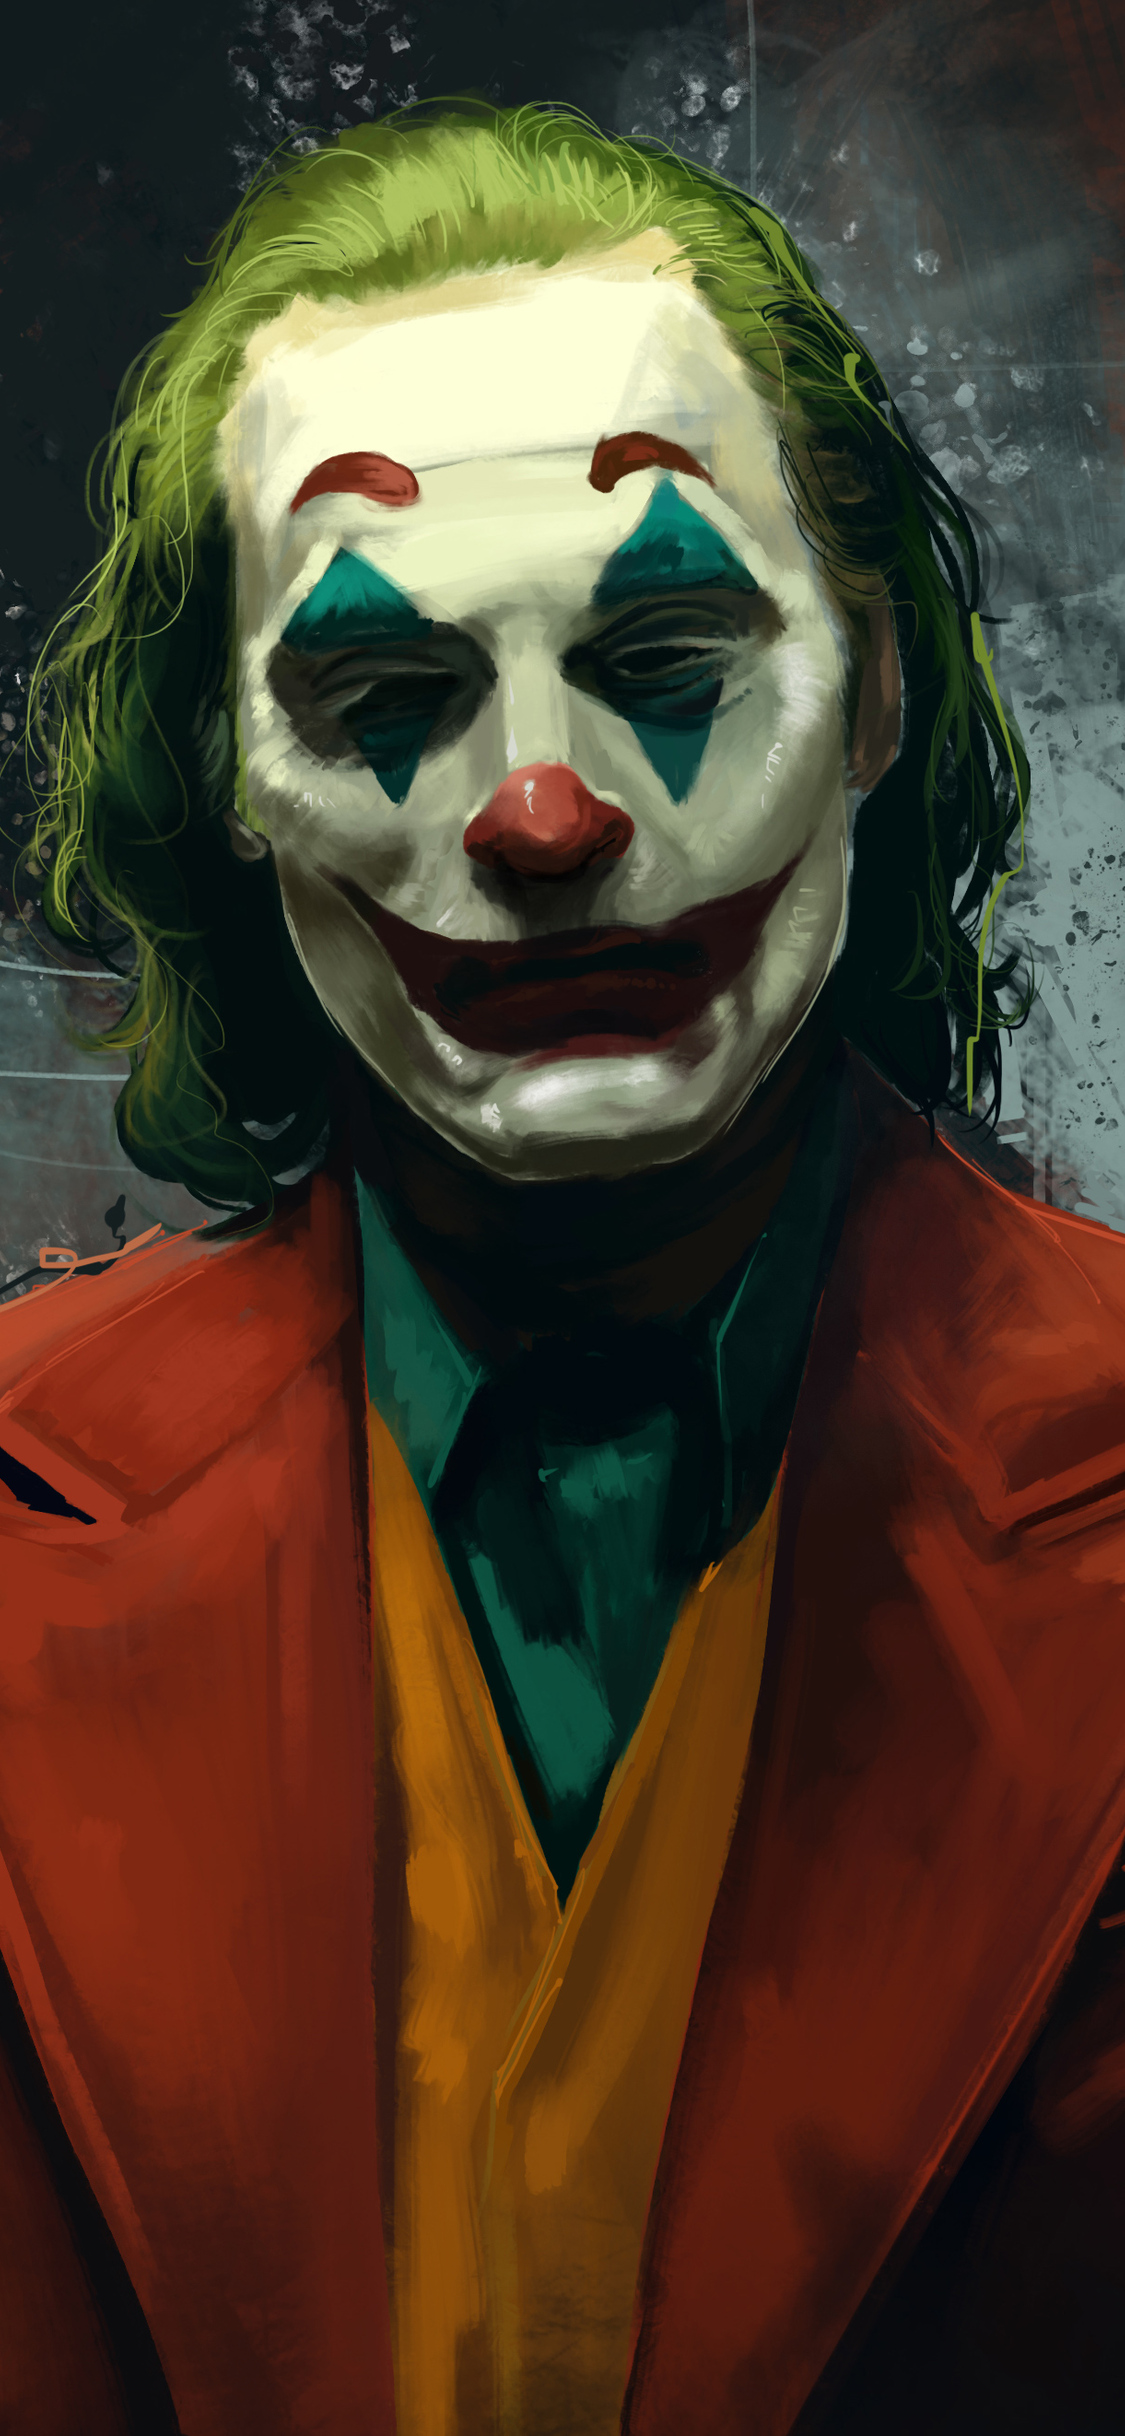 1125x2436 Joker Joaquin Phoenix Movie Artwork Iphone Xs